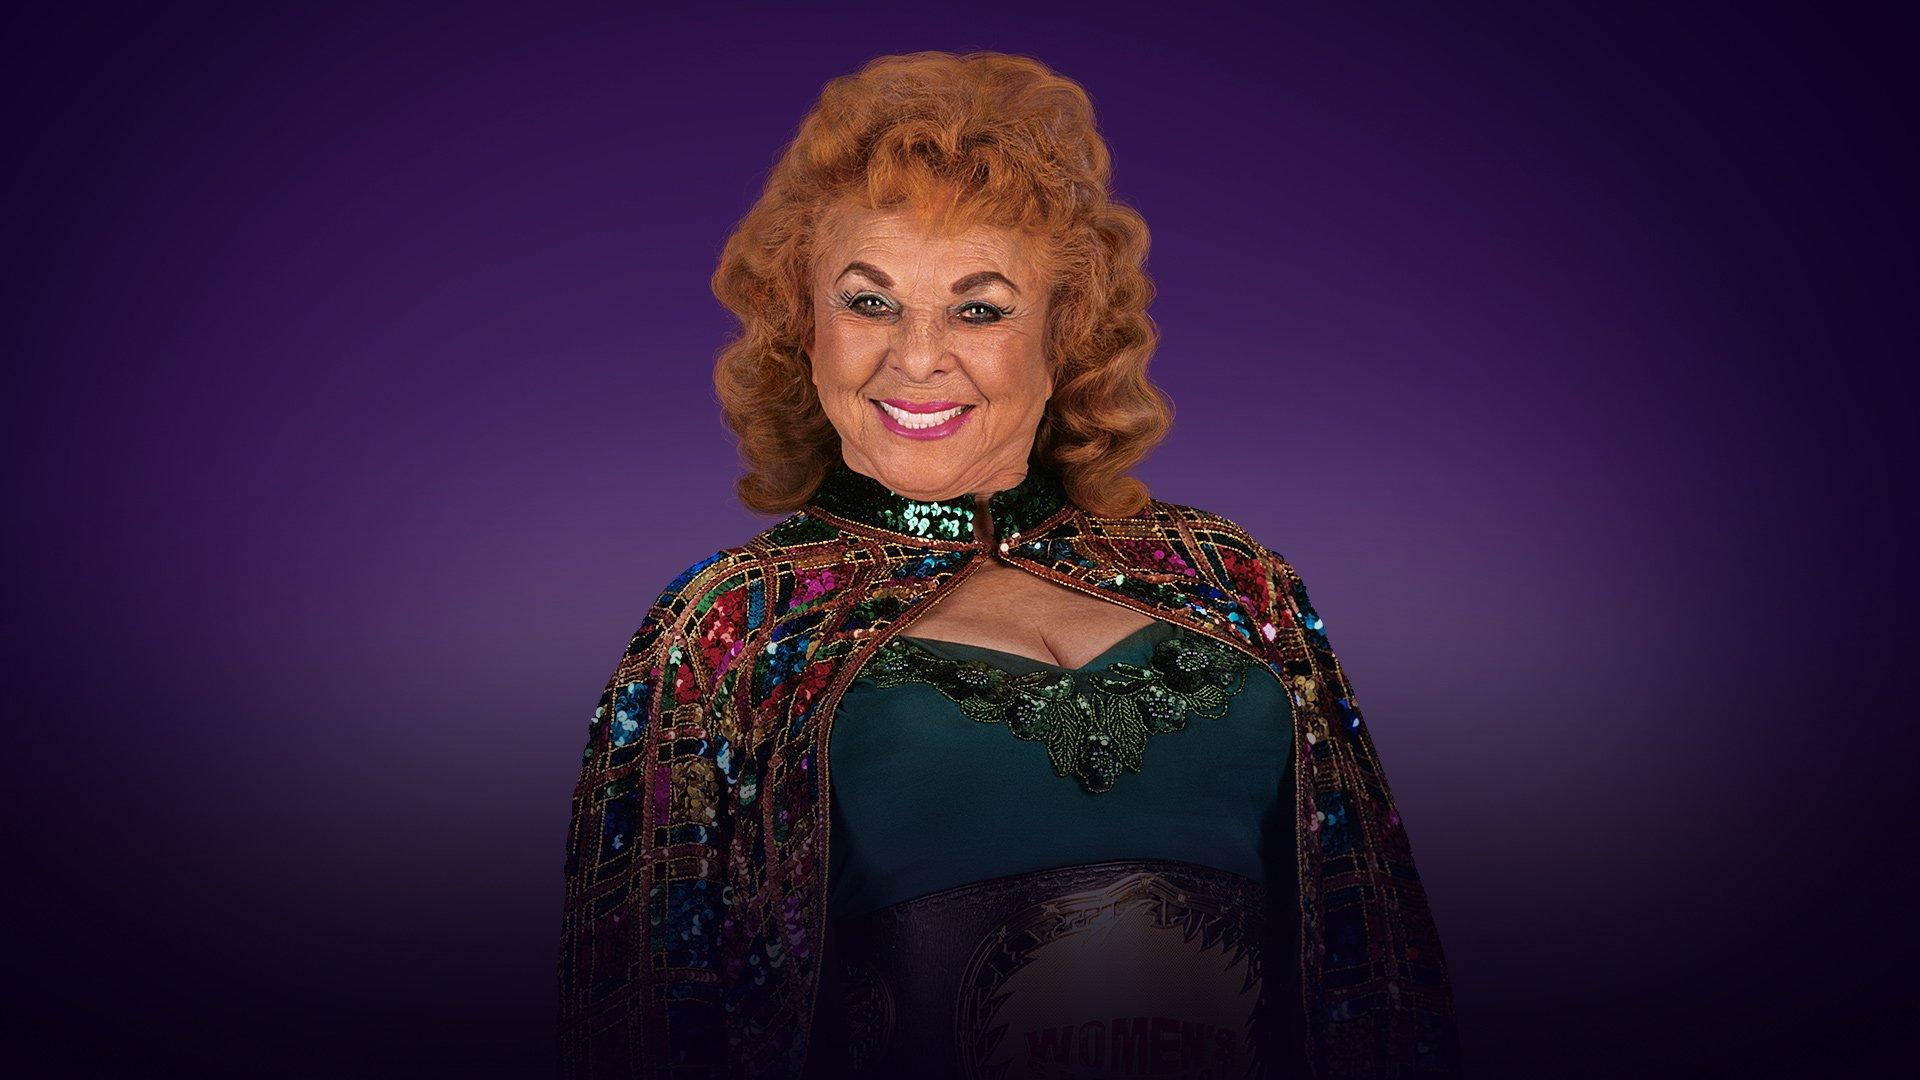 Women's Battle Royal no longer named after The Fabulous Moolah